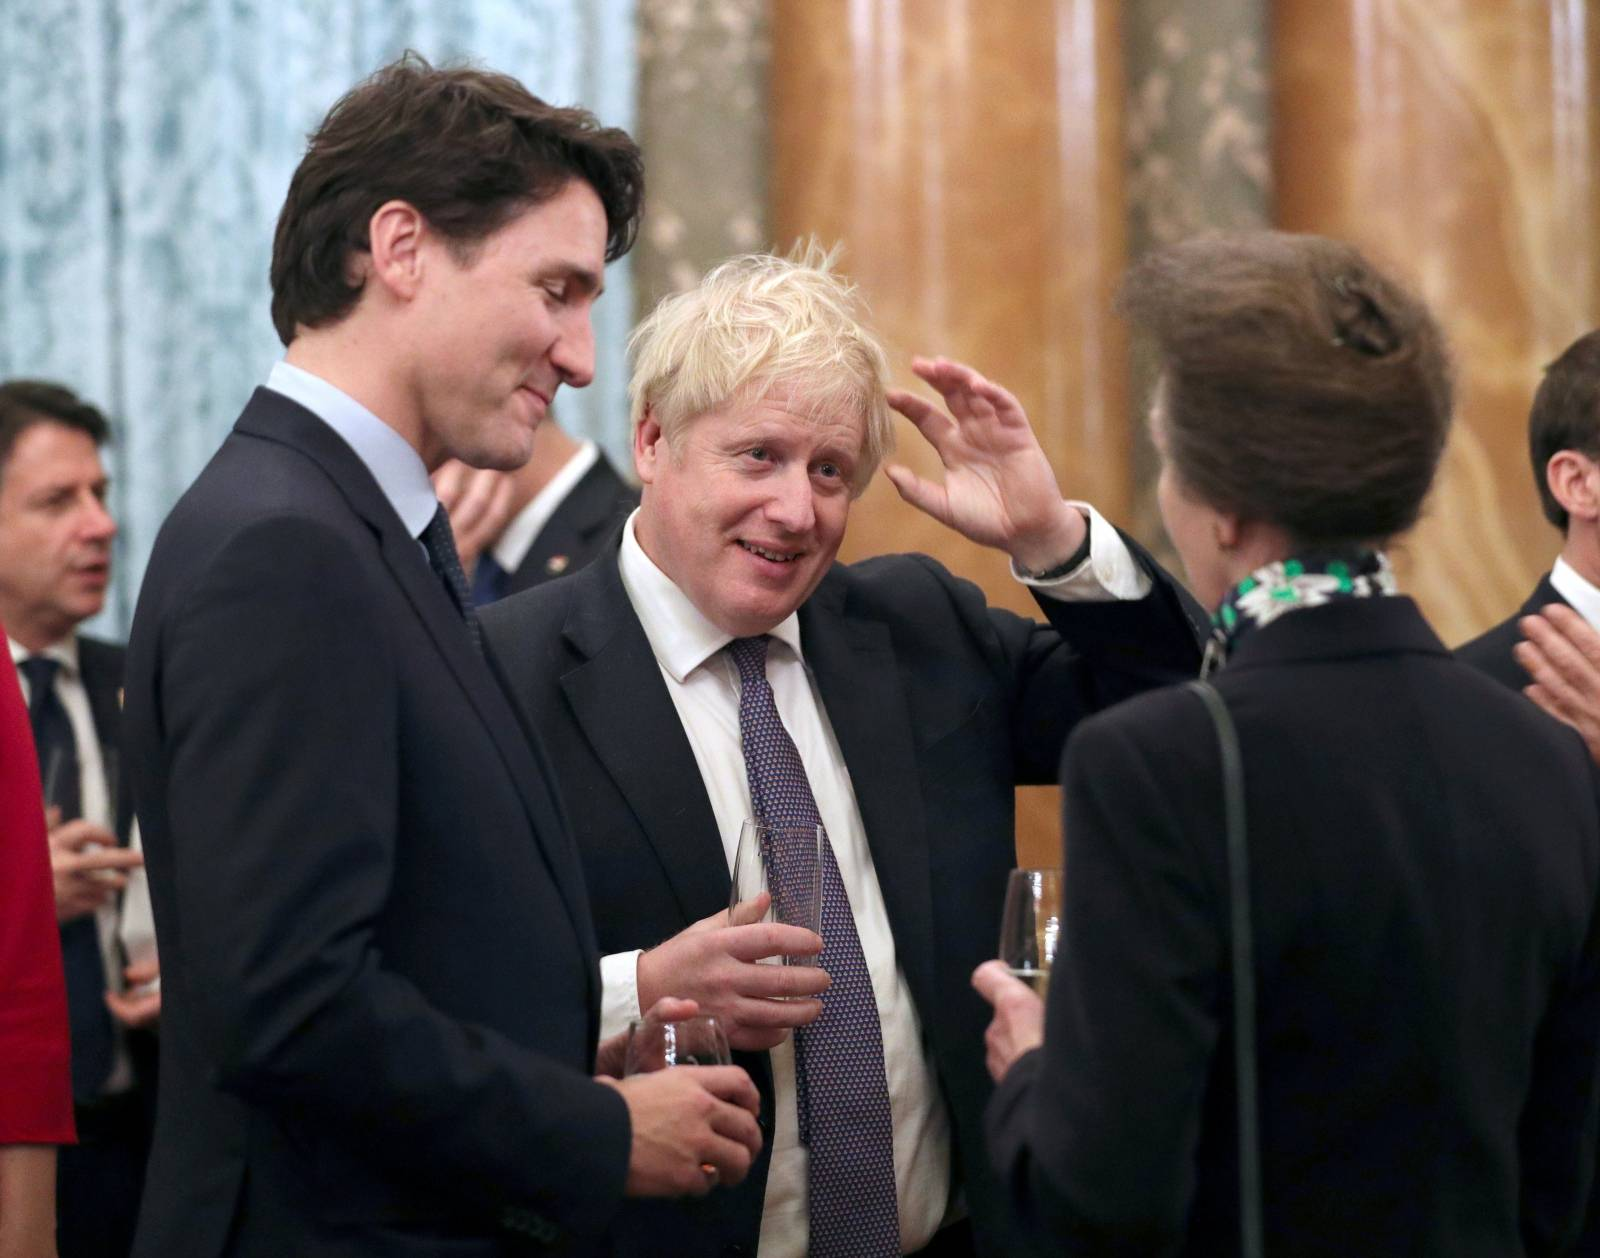 FILE PHOTO: NATO leaders attend an reception at Buckingham Palace in London